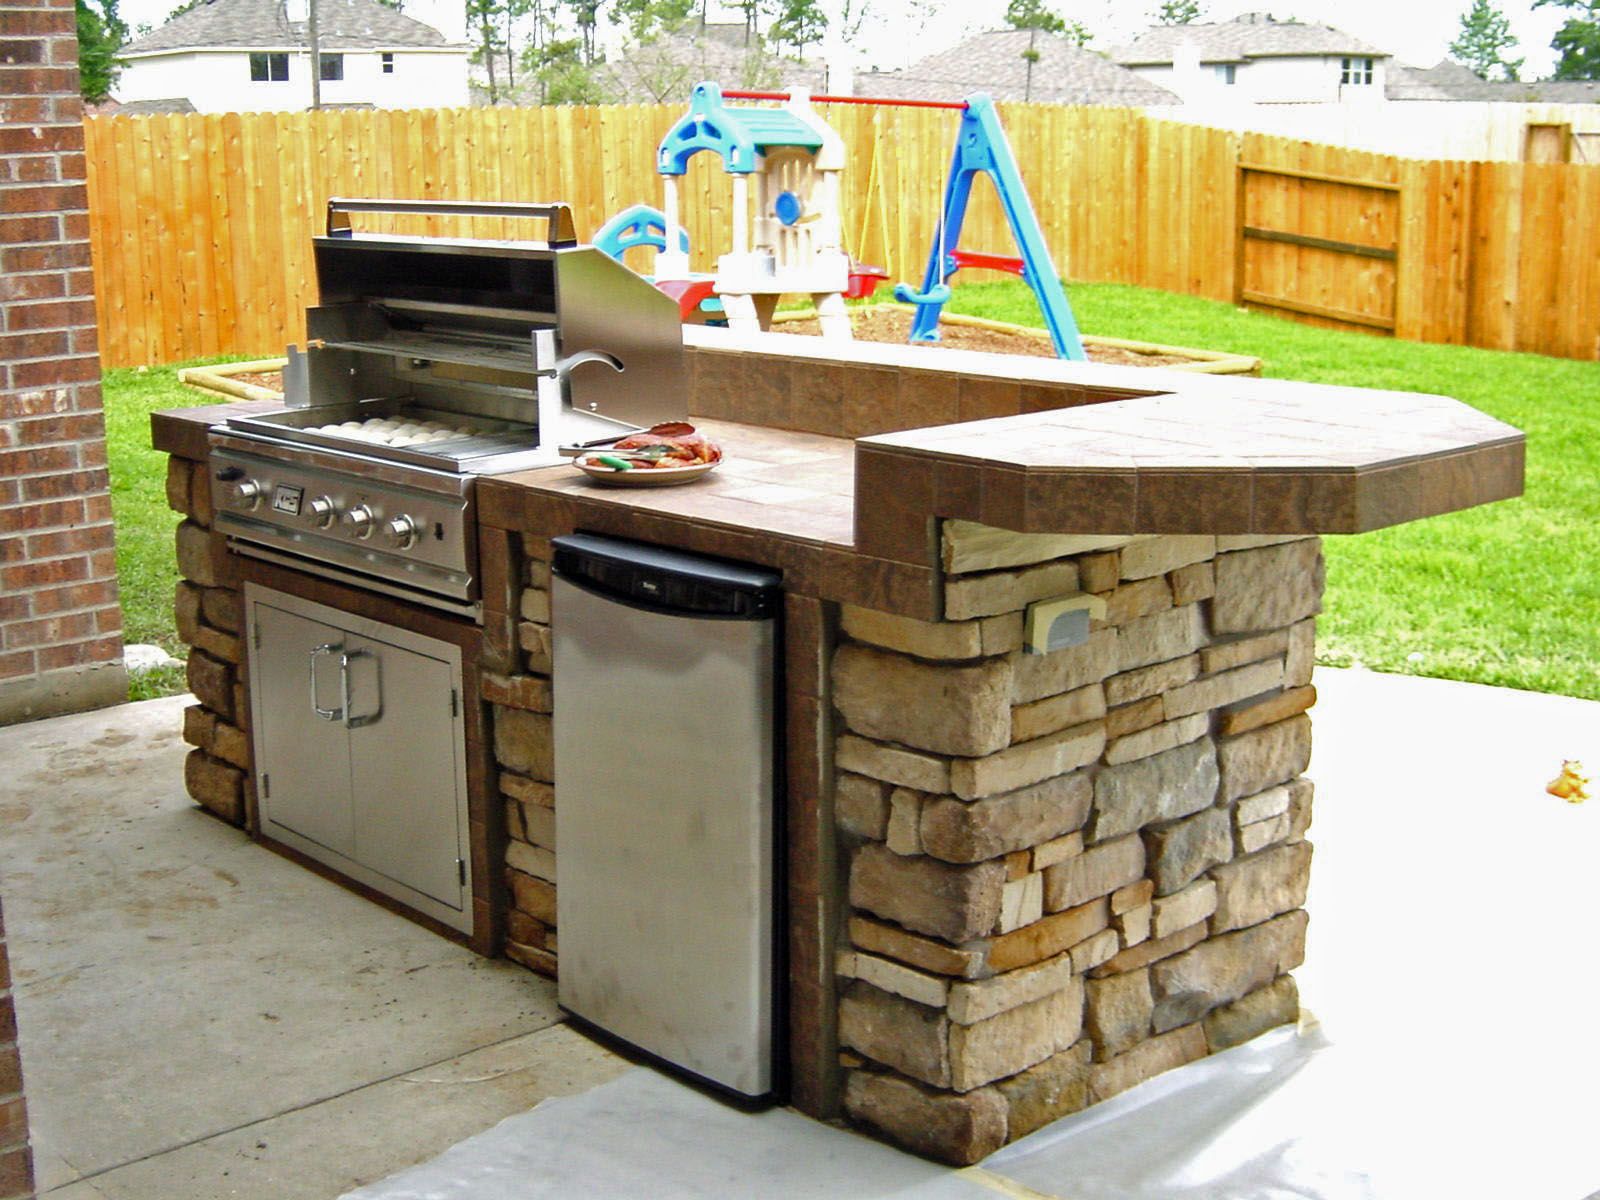 17 best ideas about small outdoor kitchens on pinterest outdoor kitchens backyard kitchen and outdoor kitchen patio